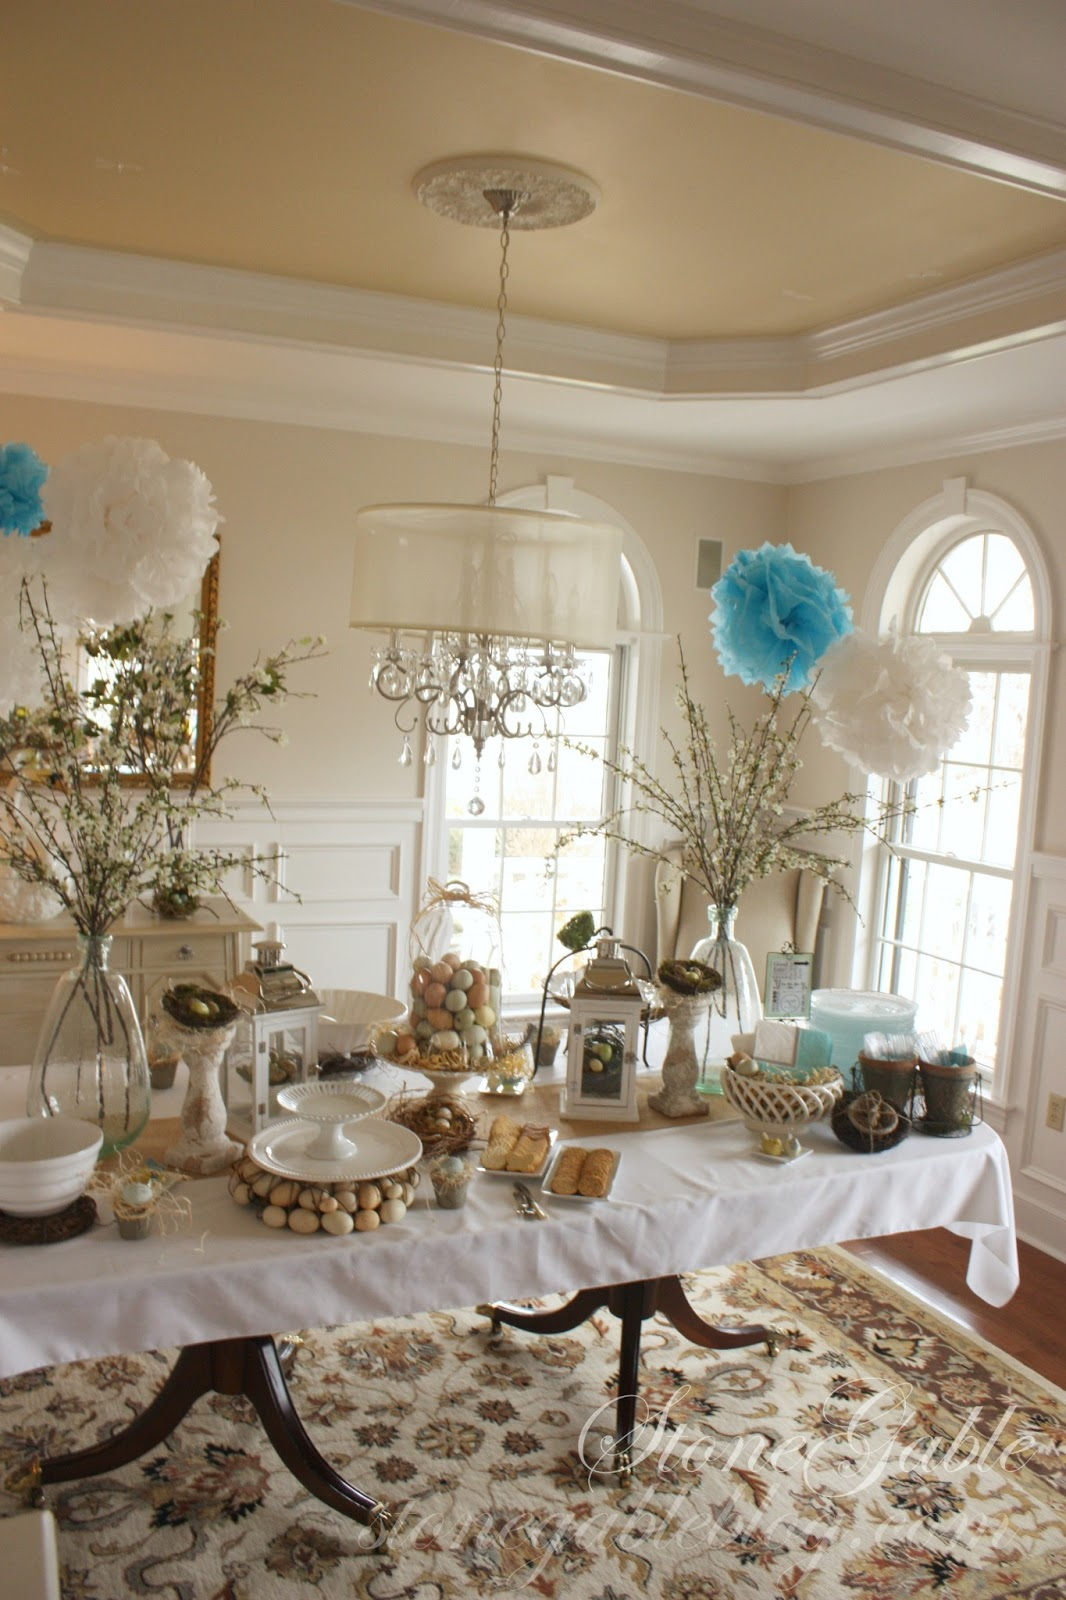 Decorate A Room: SPRING BRIDAL SHOWER, PART I